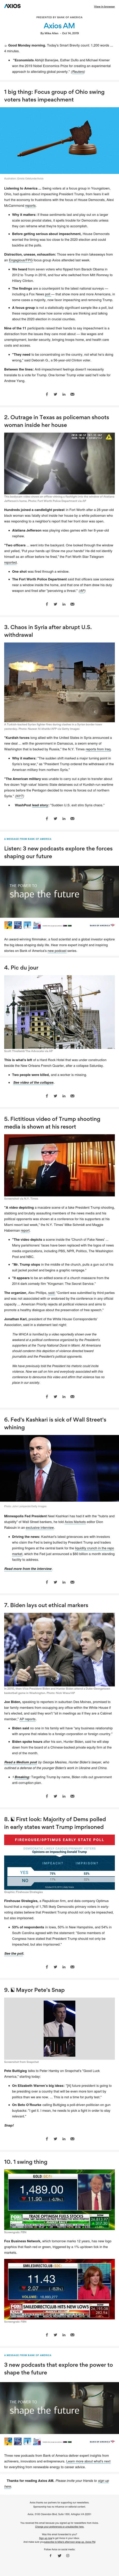 "Axios AM: Mike's Top 10 — Video shown to Trump supporters shows him shooting up the ""Church of Fake News"" — Texas outrage"